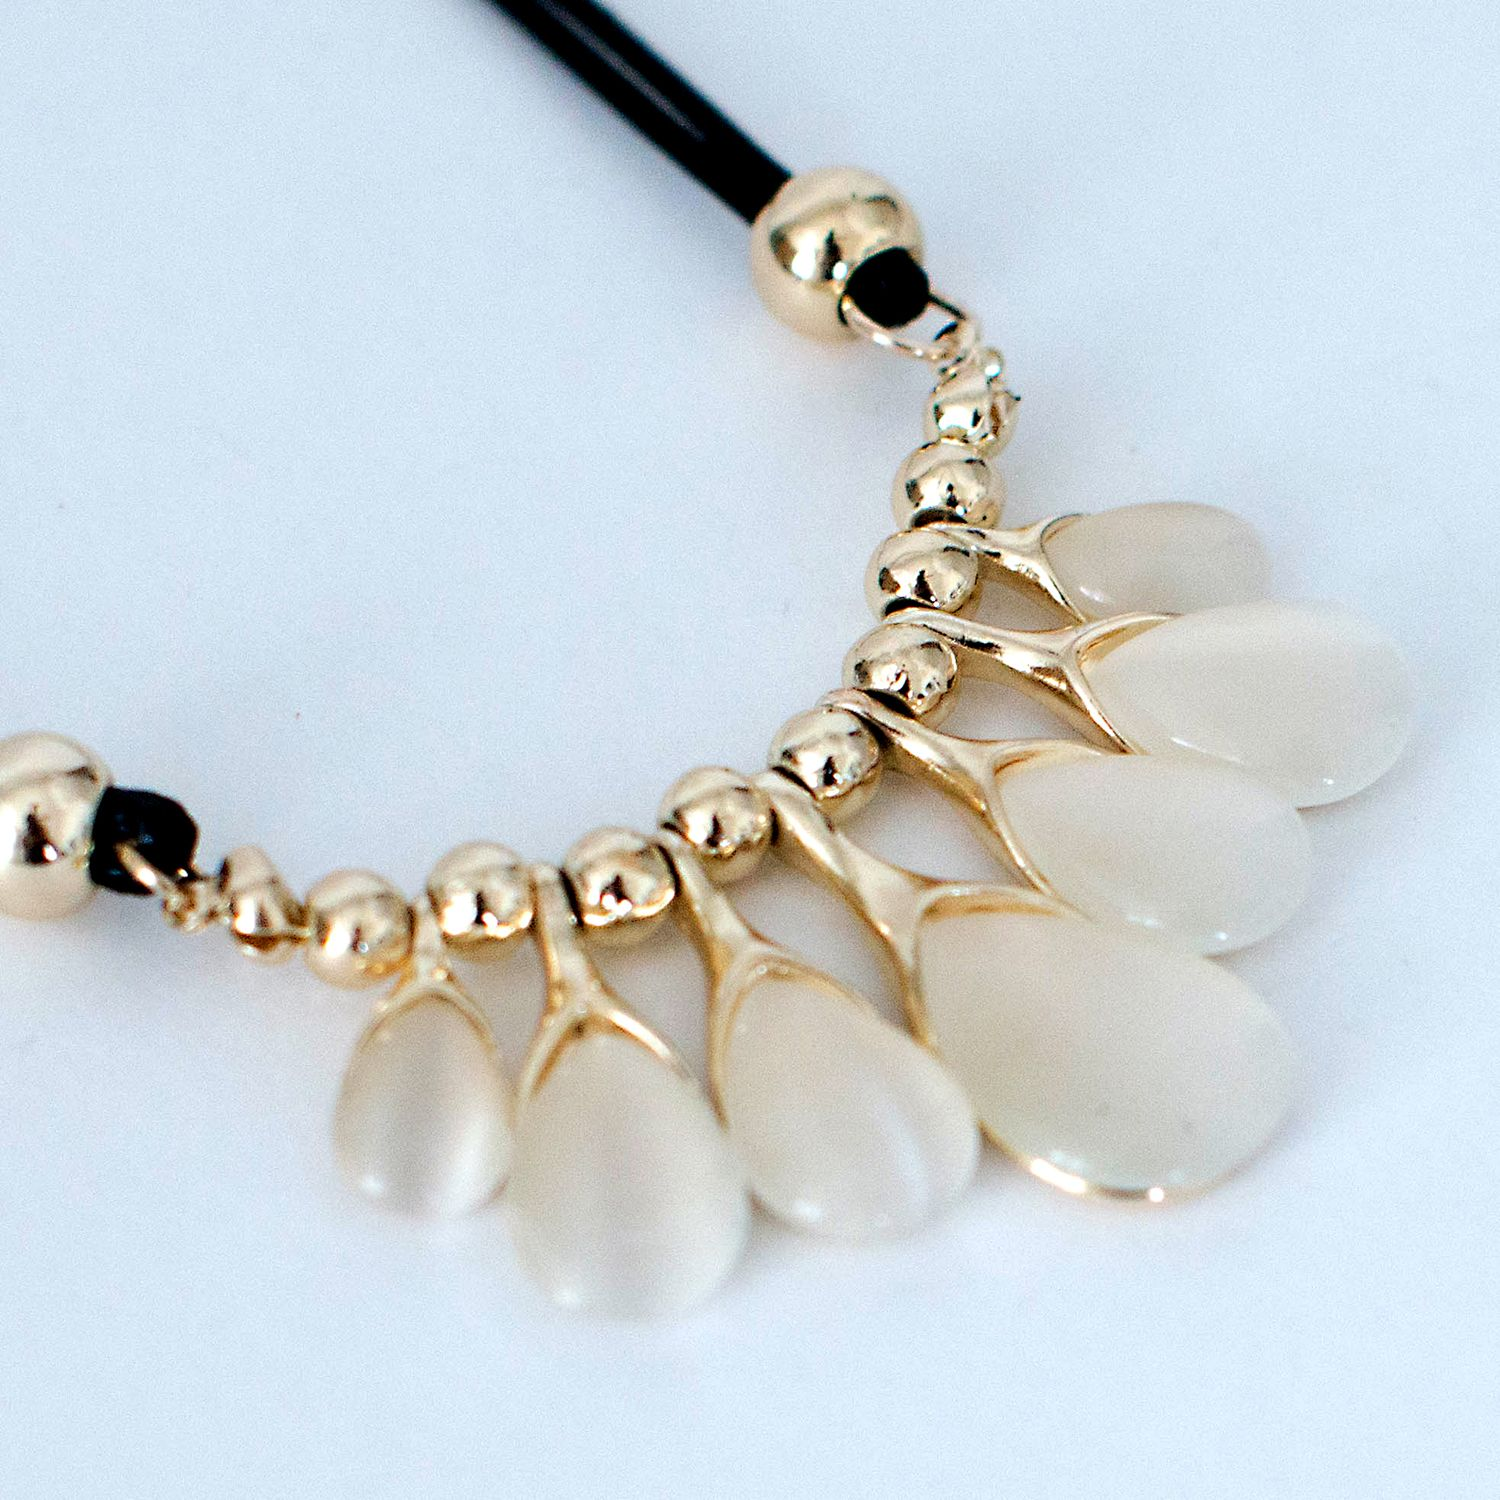 collections-by-h | NECKLACES     £12.00            Gold and opal effect semi -precious stone pendent necklace, 7 stones draped of glistening gold's and set off against and background of bold black.